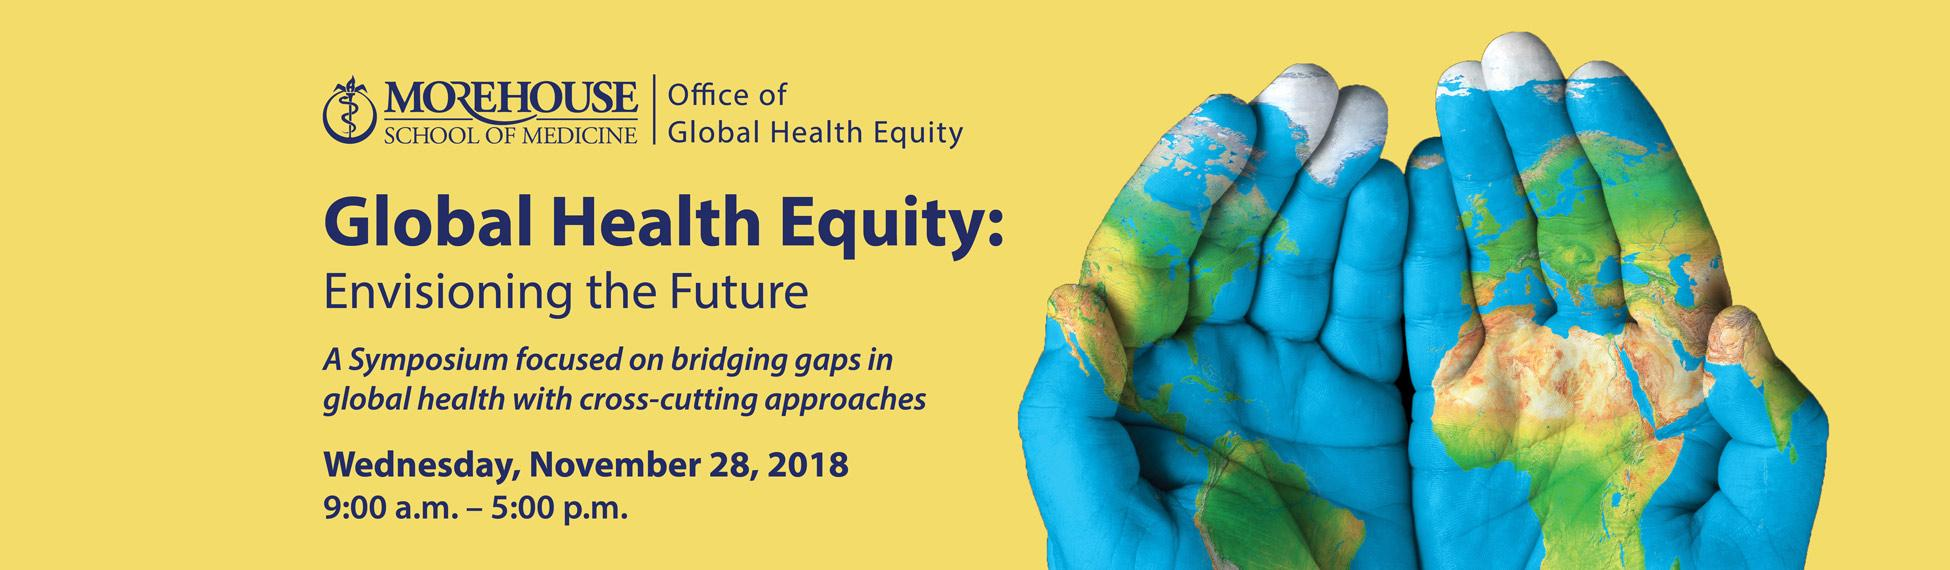 Global Health Equity: Envisioning the Future